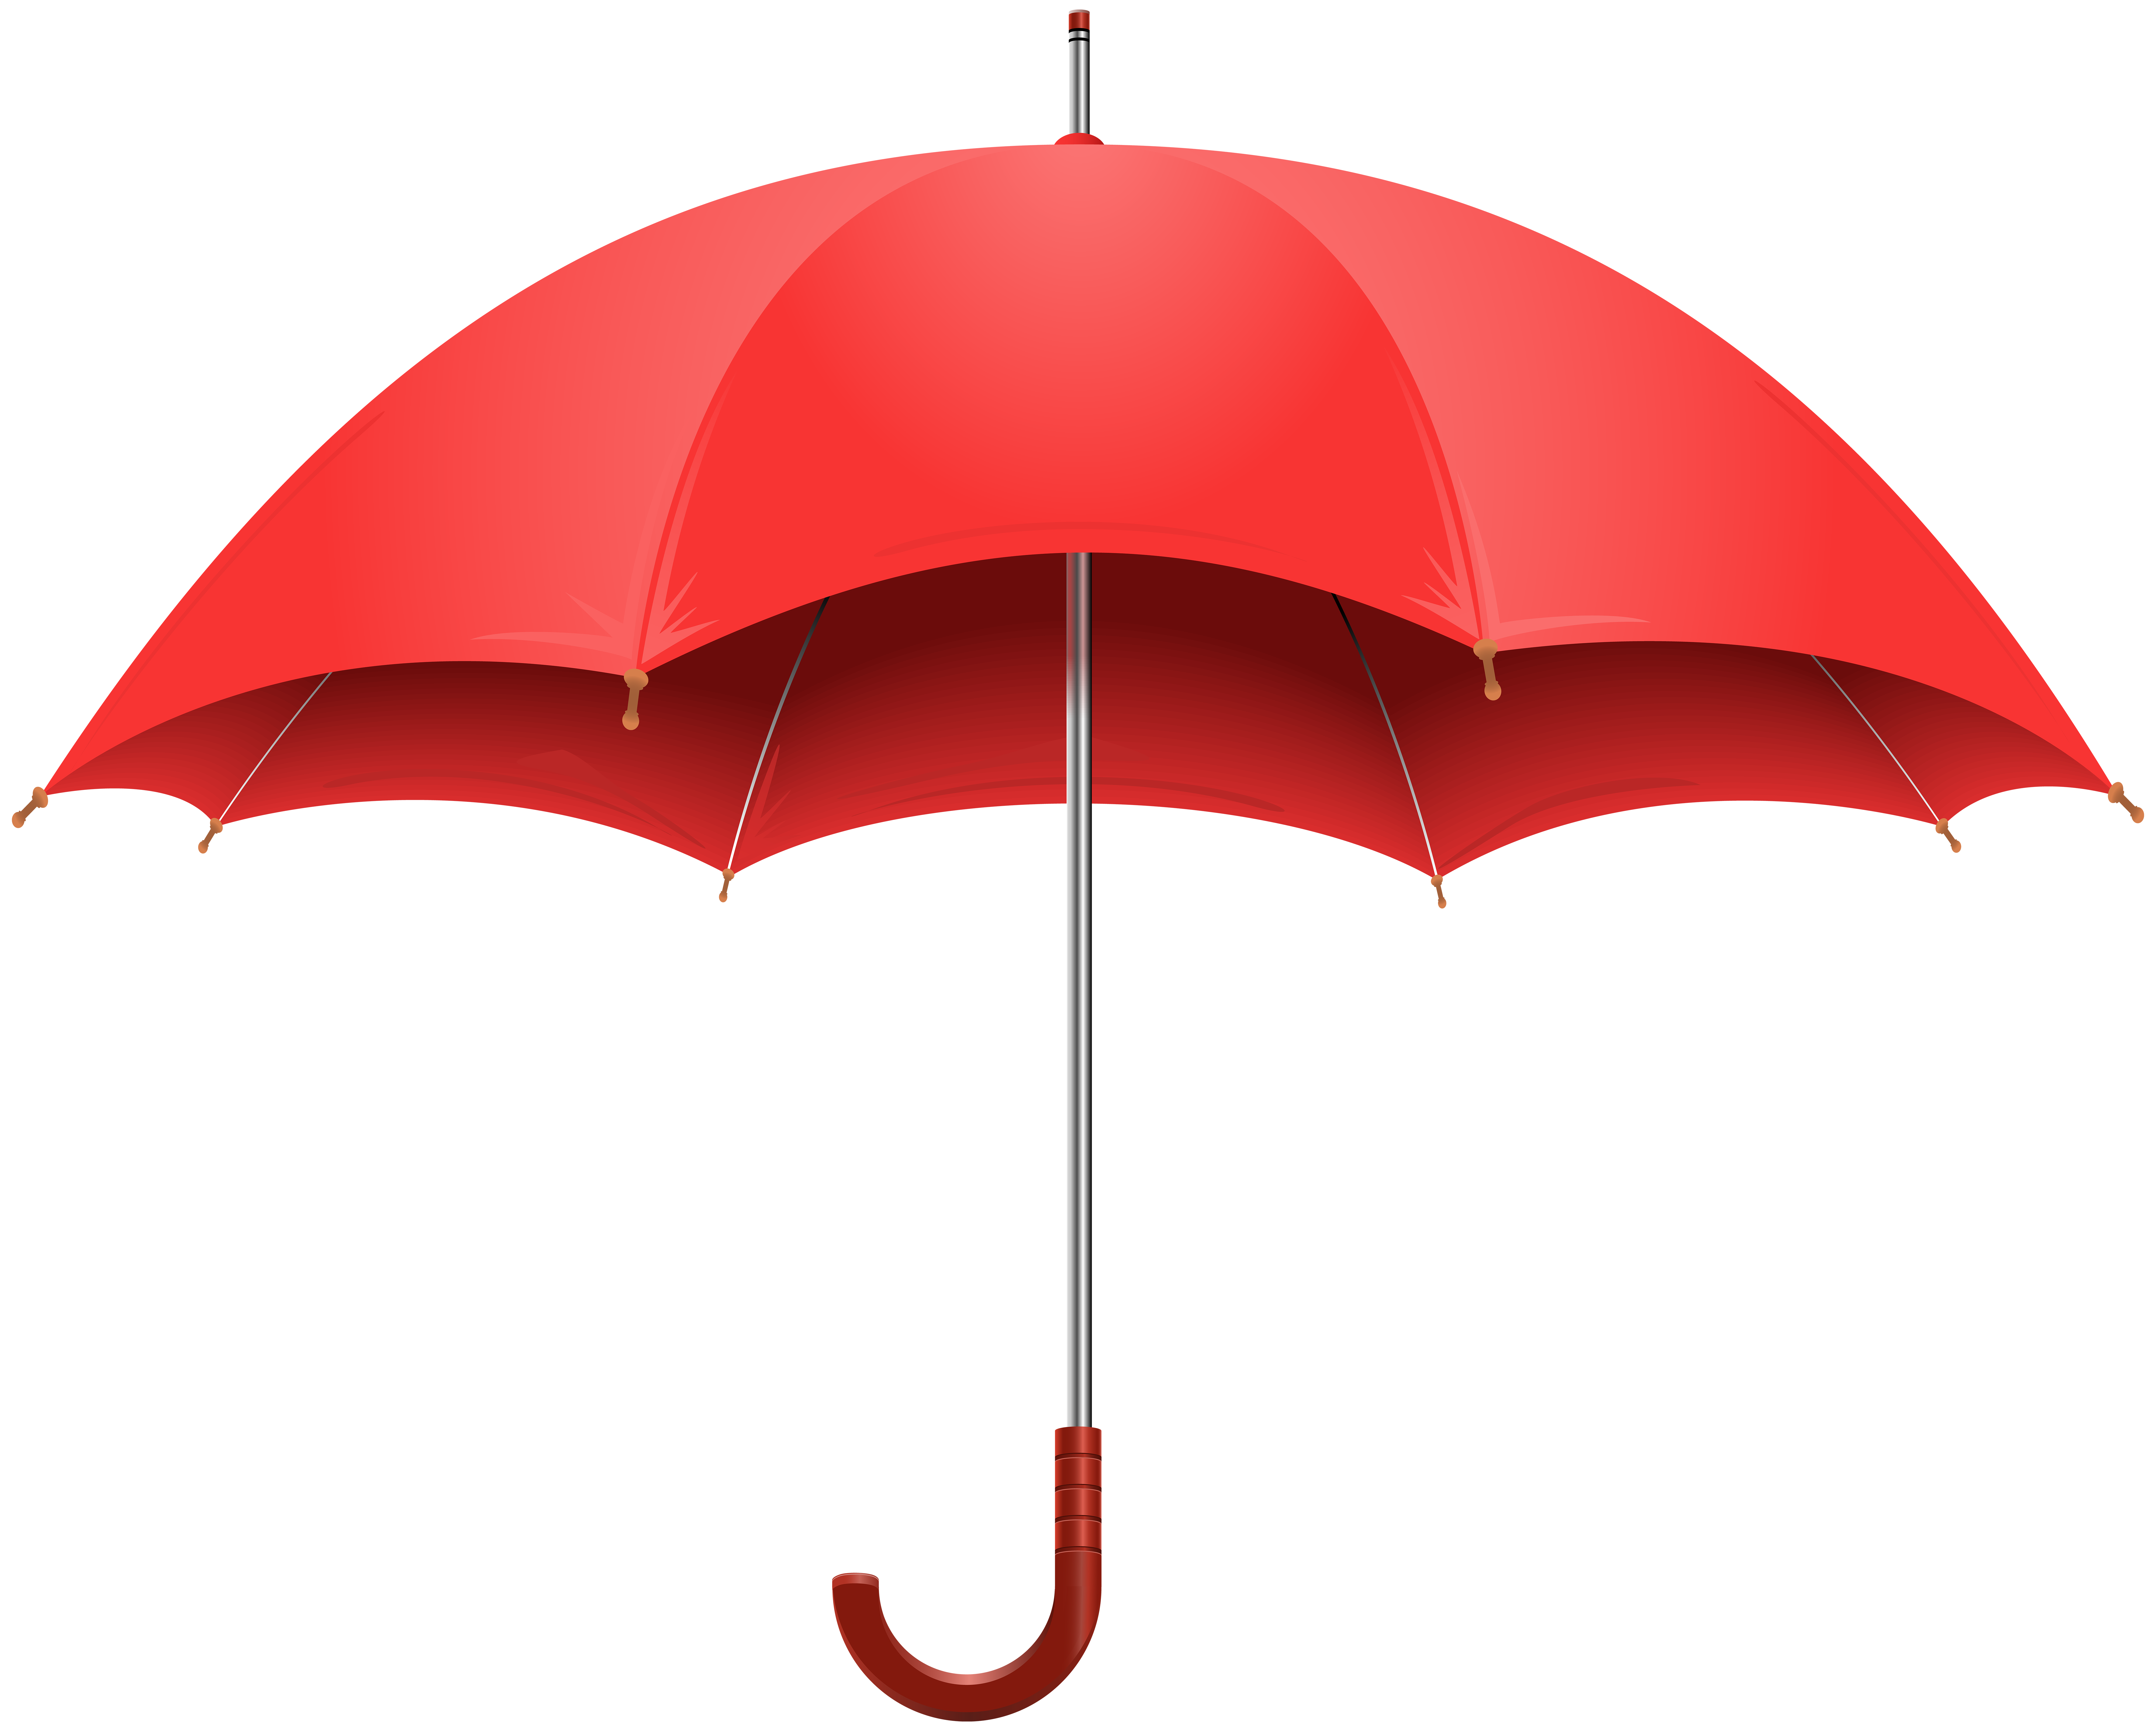 Red umbrella png. Clip art image gallery